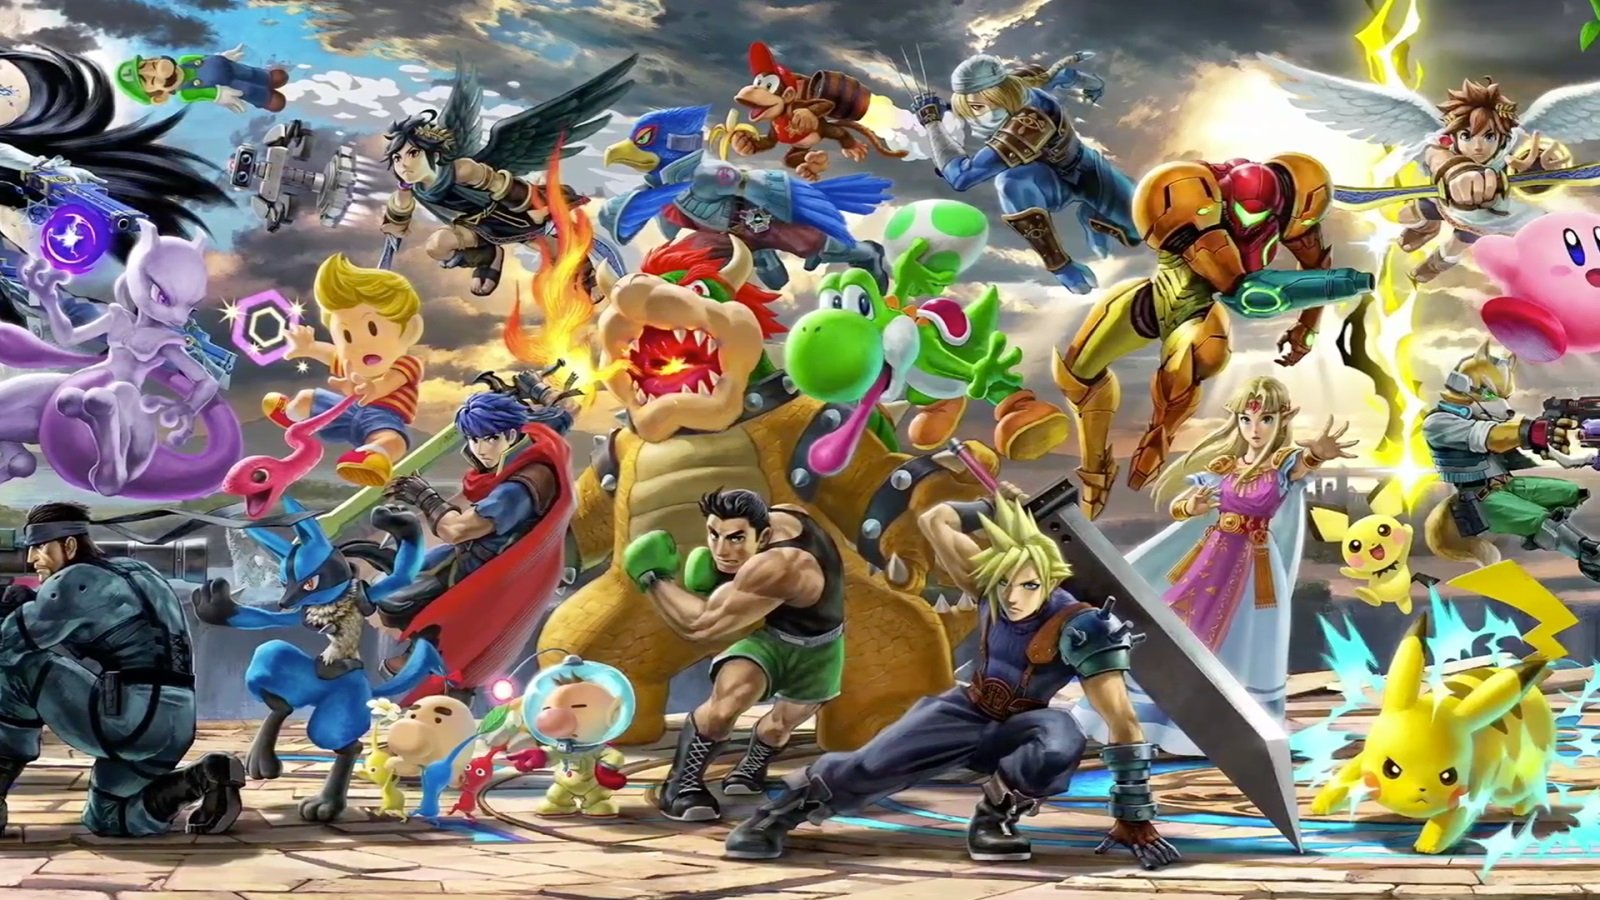 Smash Bros. Ultimate is gonna headline Evo this year